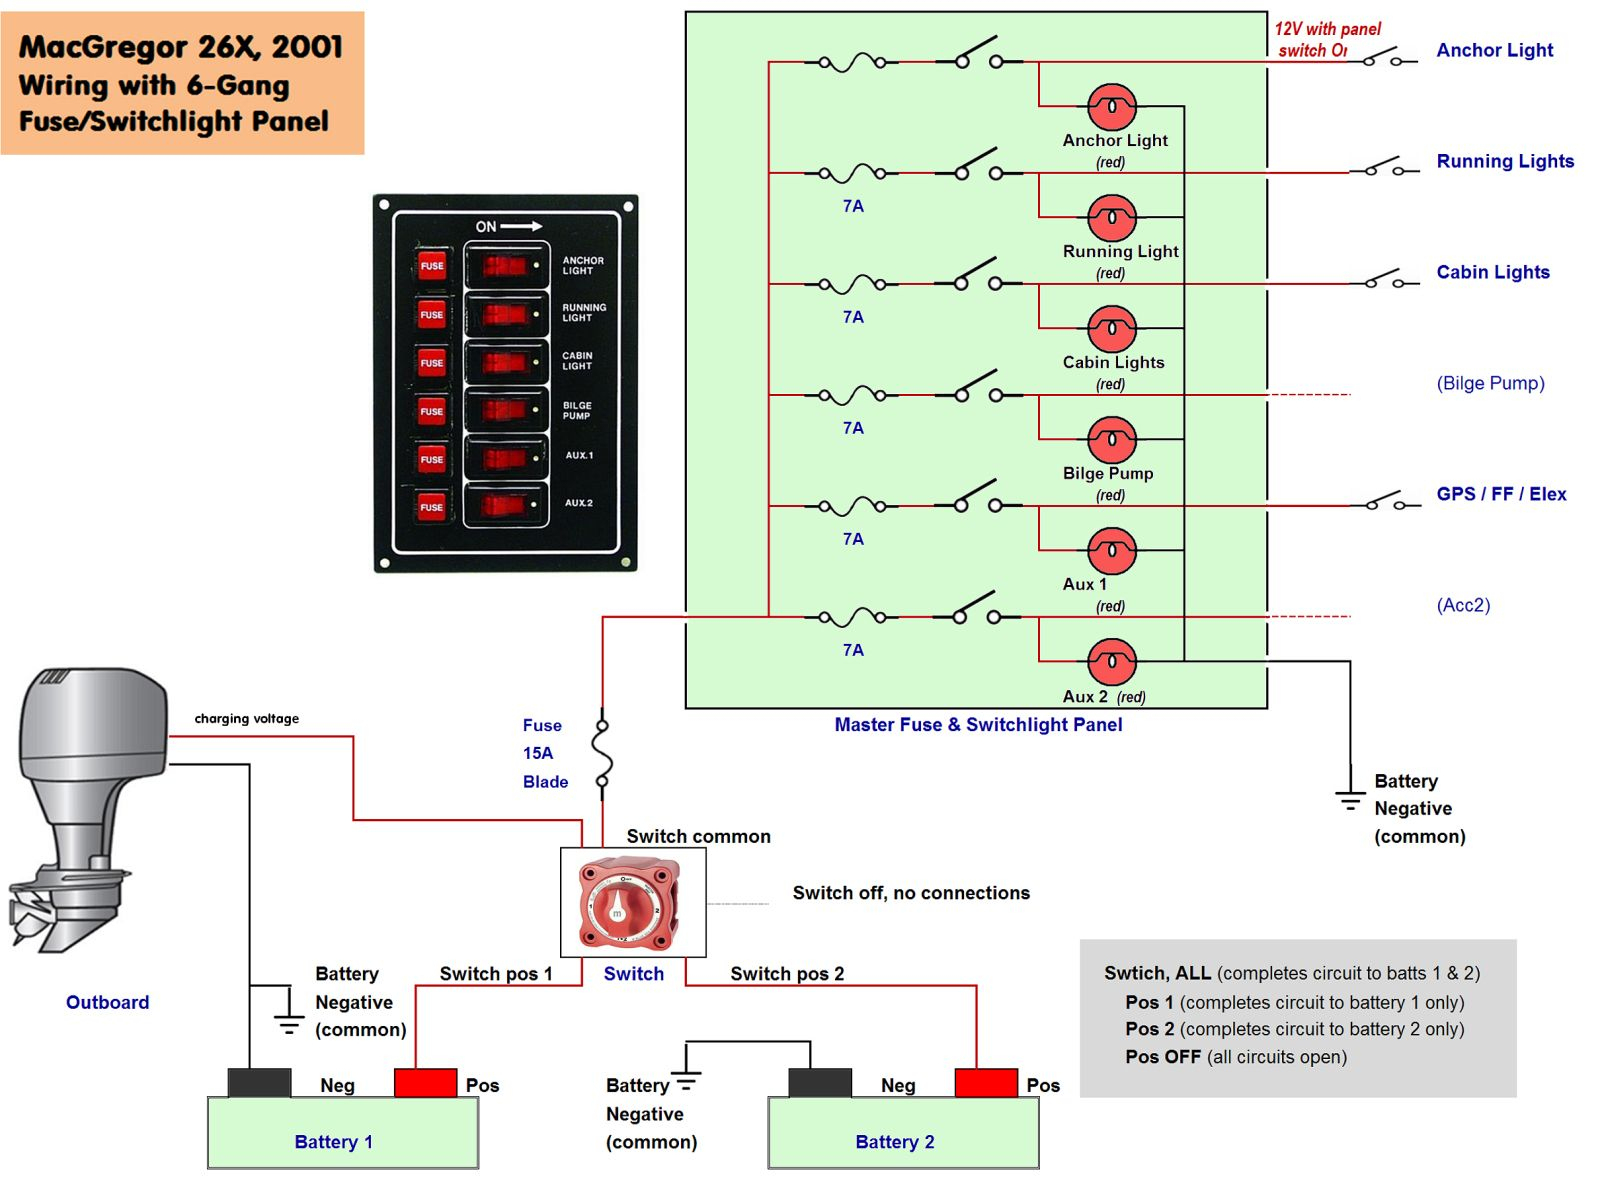 Boat Wiring Fuse Panel Diagram - Wiring Diagram Detailed - Boat Fuse Panel Wiring Diagram